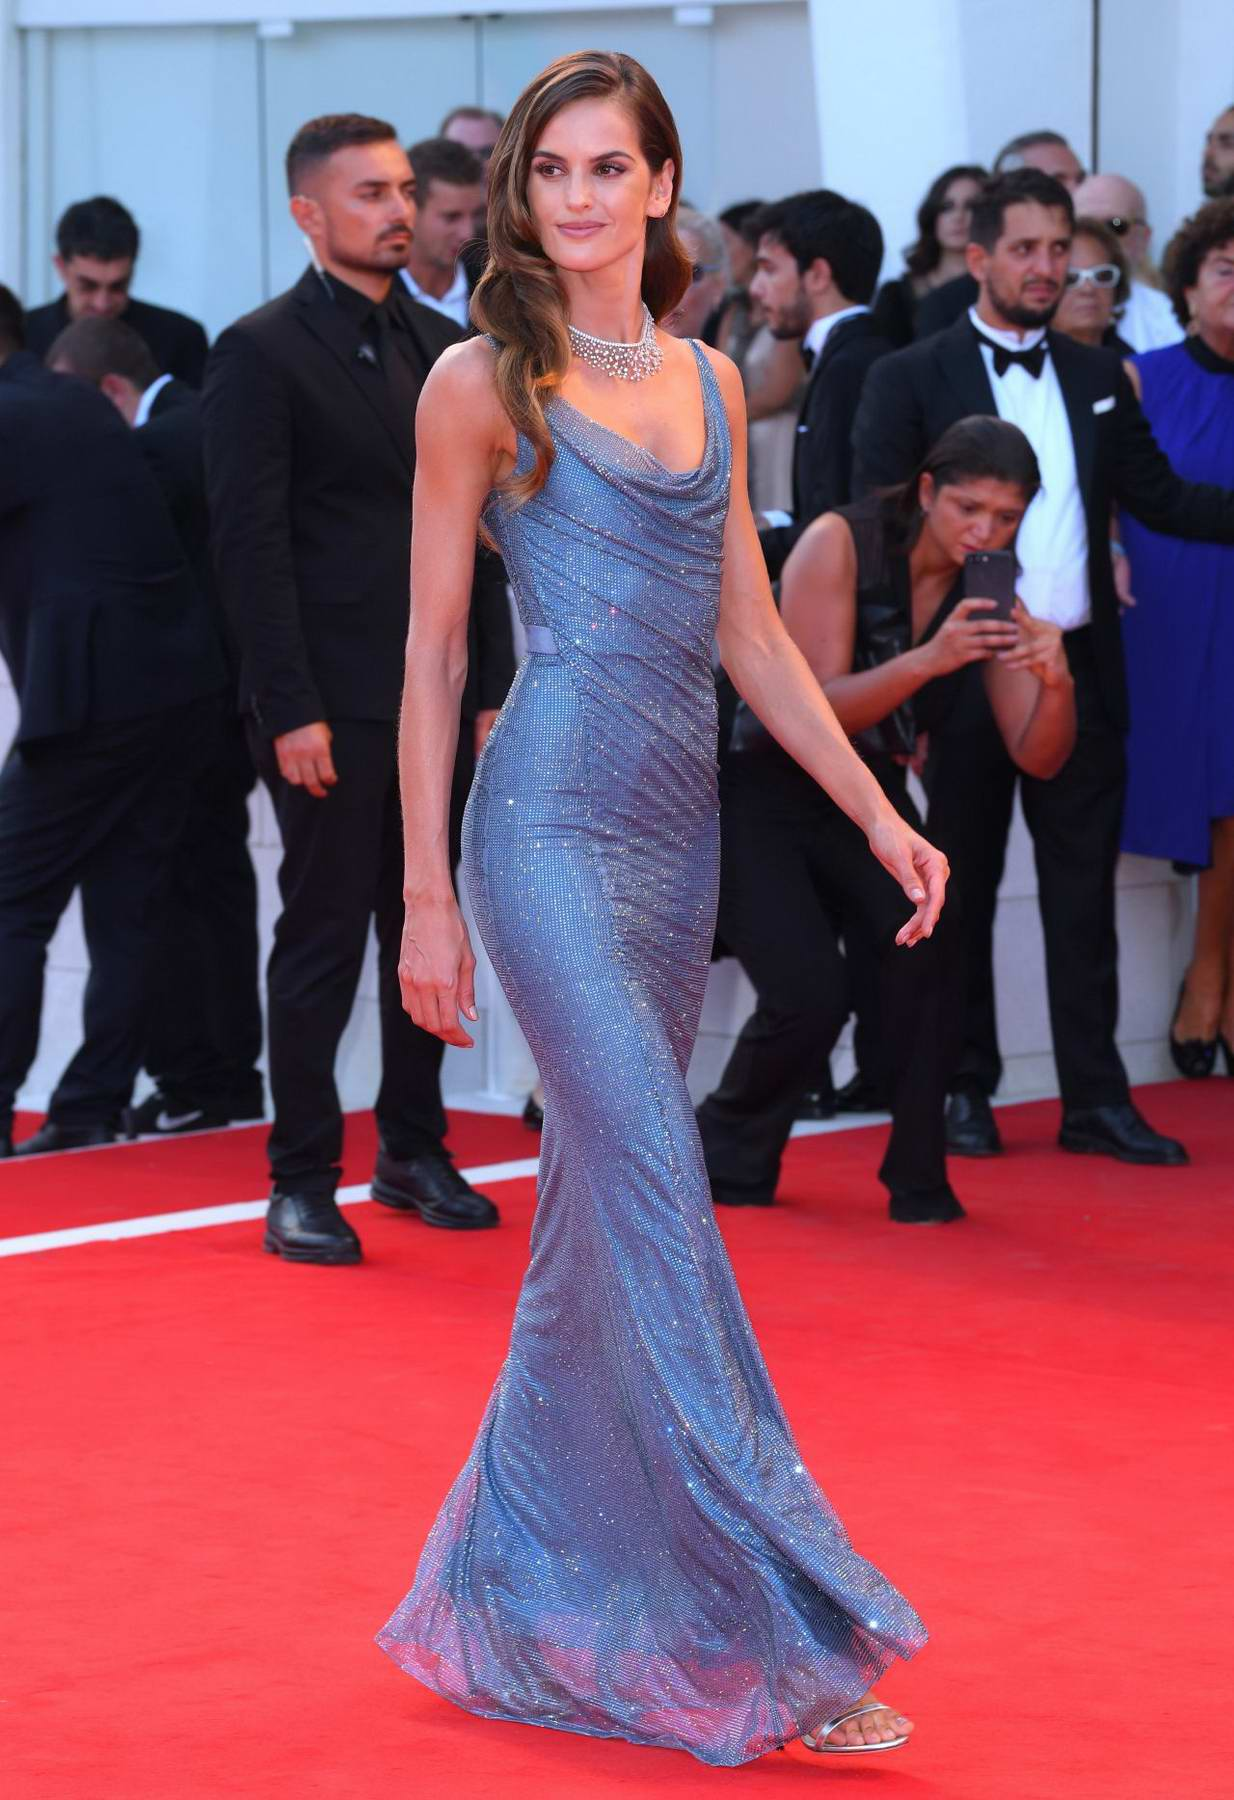 Izabel Goulart at the 'Downsizing' premiere and opening ceremony at 74th Venice Film Festival in Venice, Italy